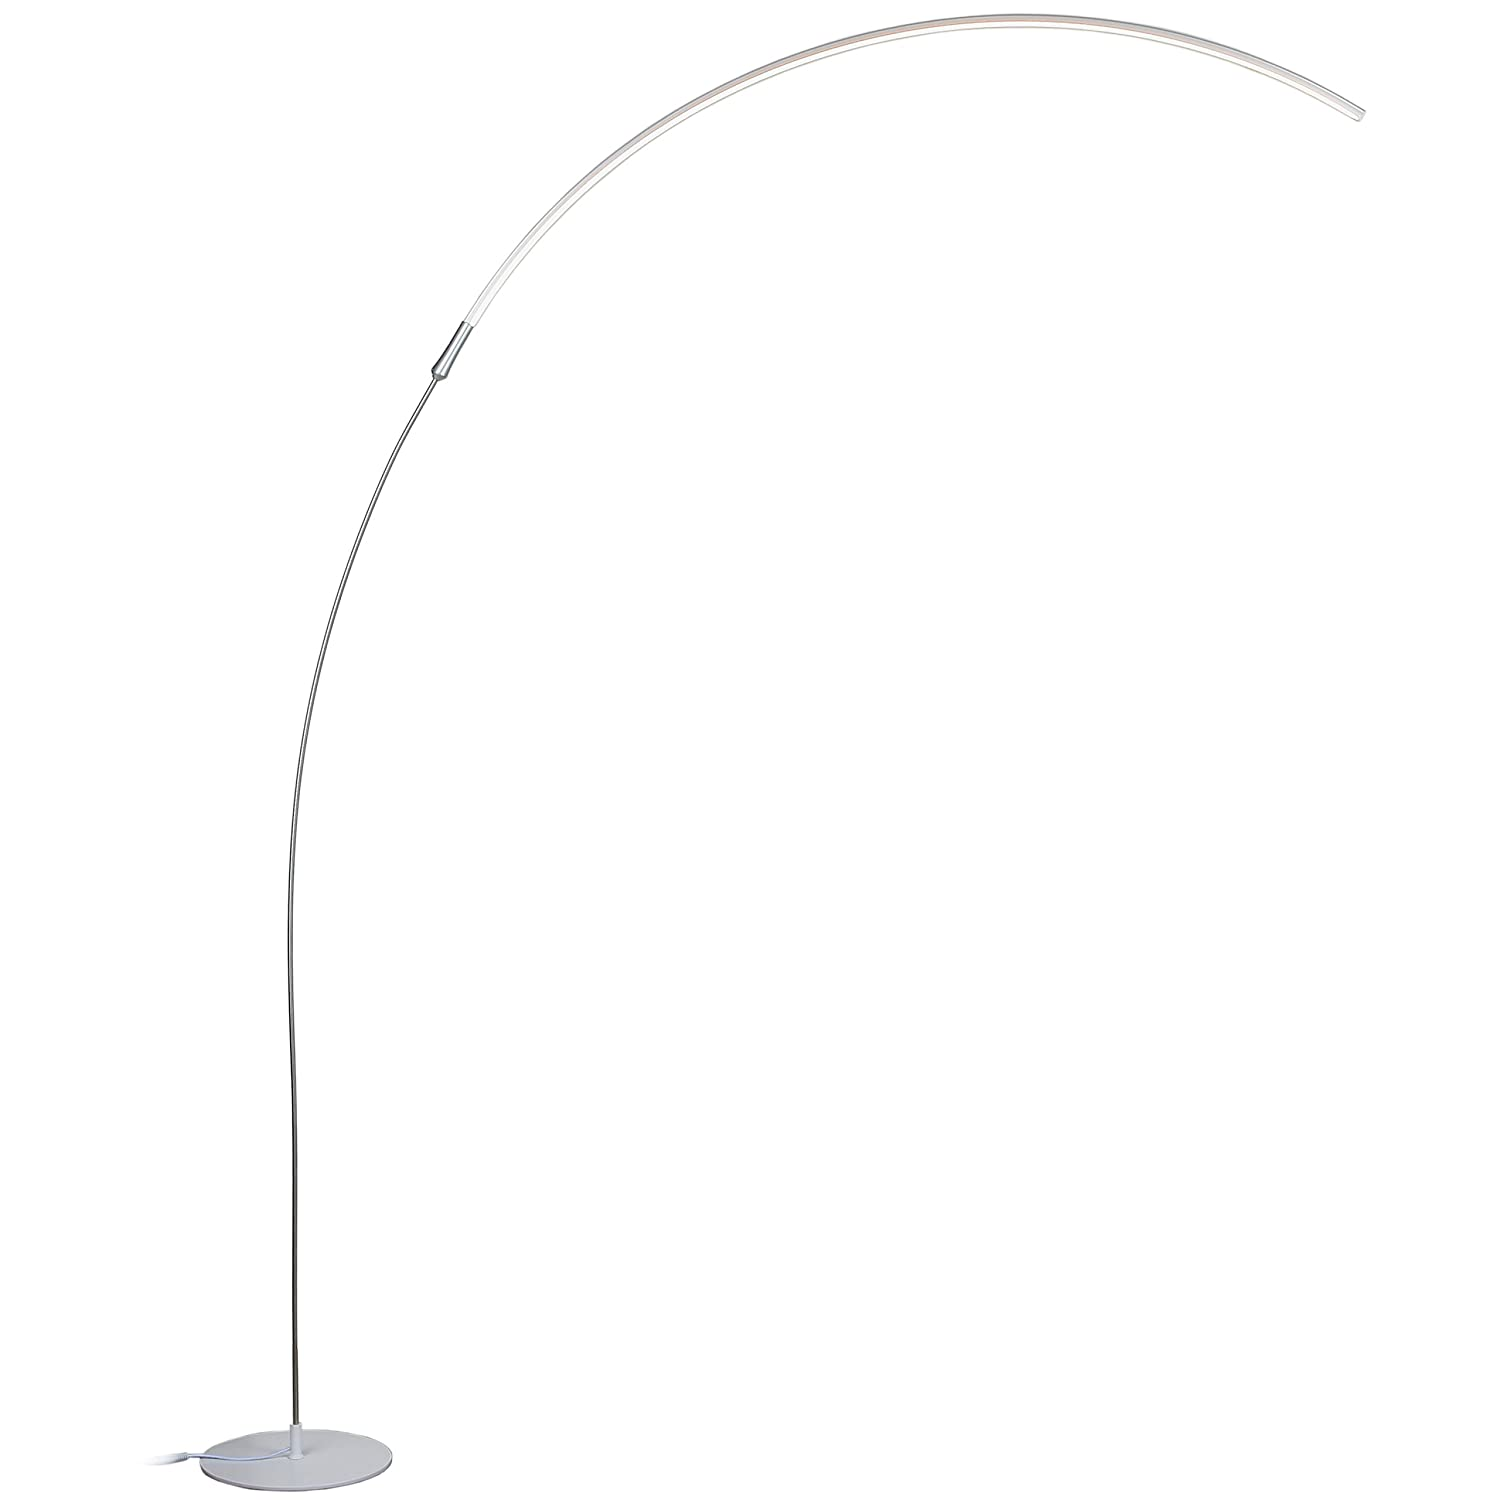 Brightech Sparq Arc LED Floor Lamp   Curved, Contemporary Minimalist  Lighting U2013Glowing Warm White